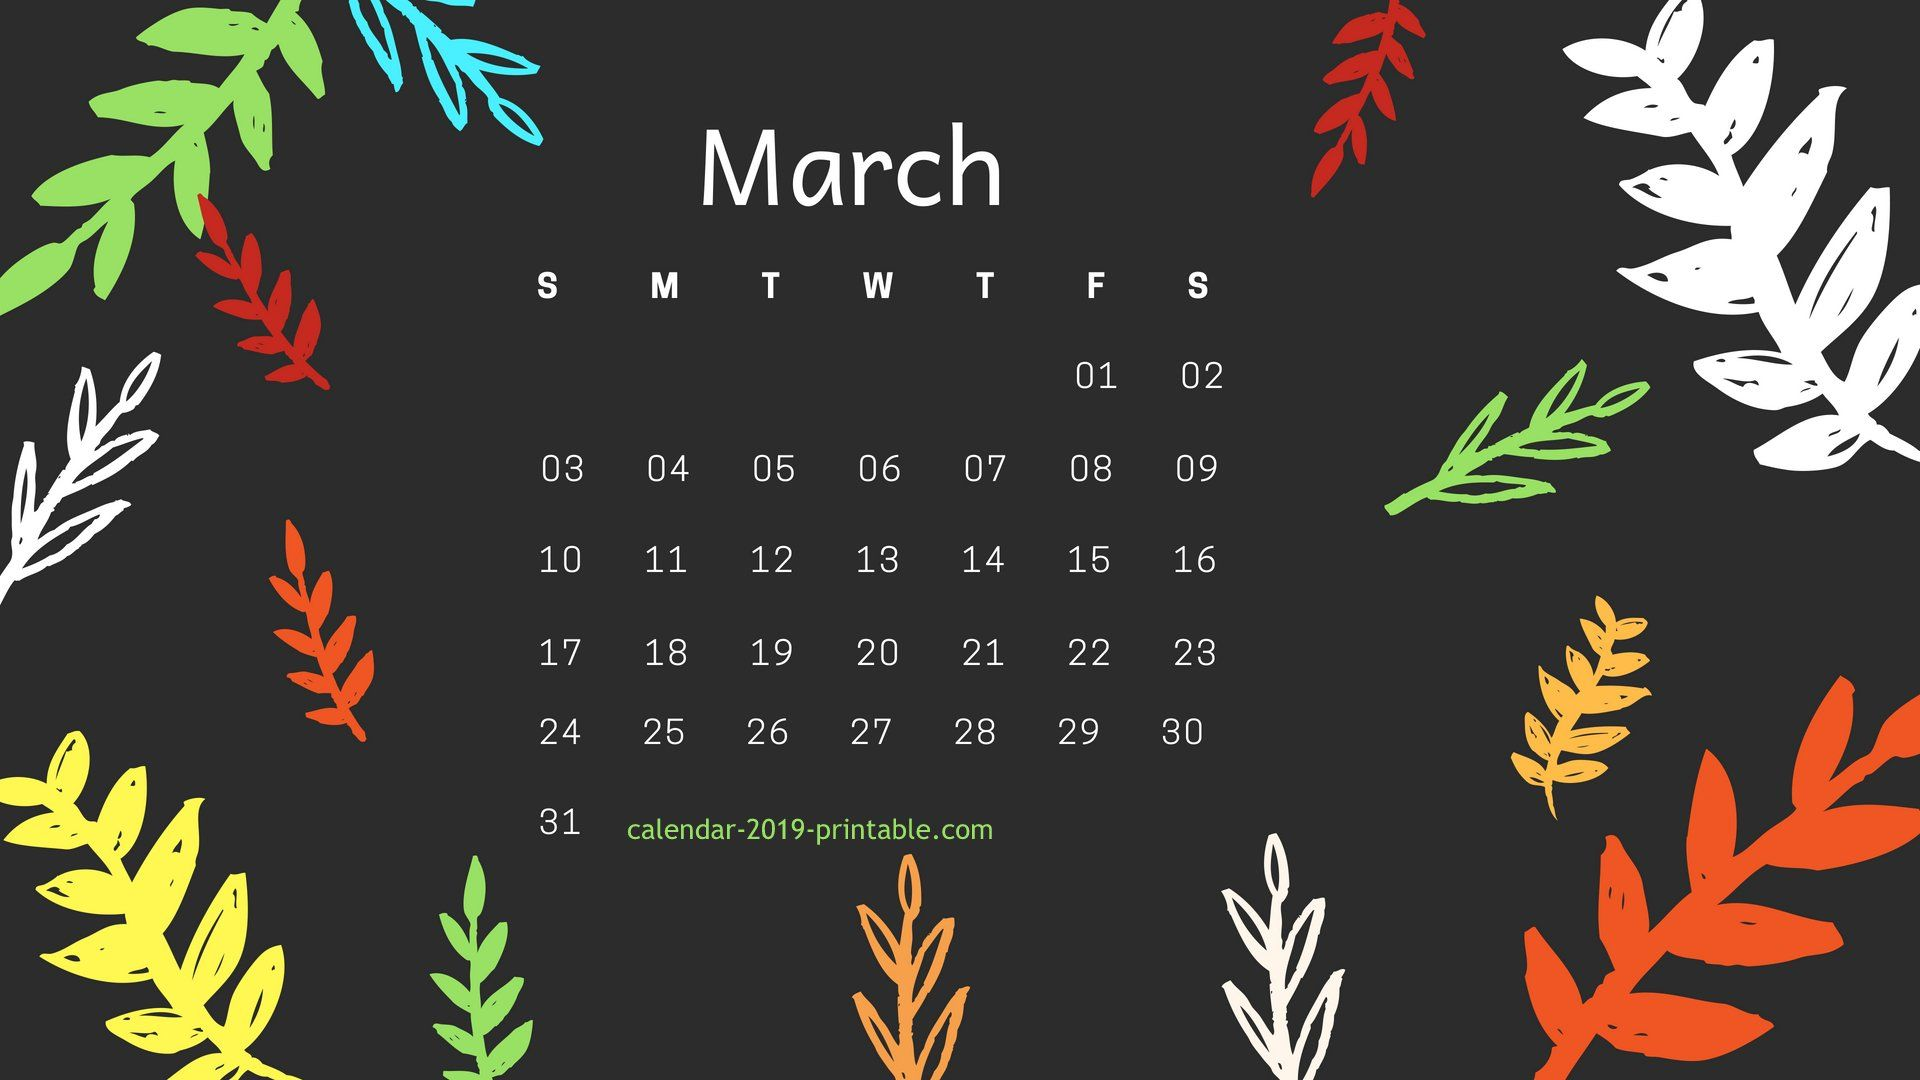 March 2019 Calendar Desktop Wallpapers Desktop Wallpaper